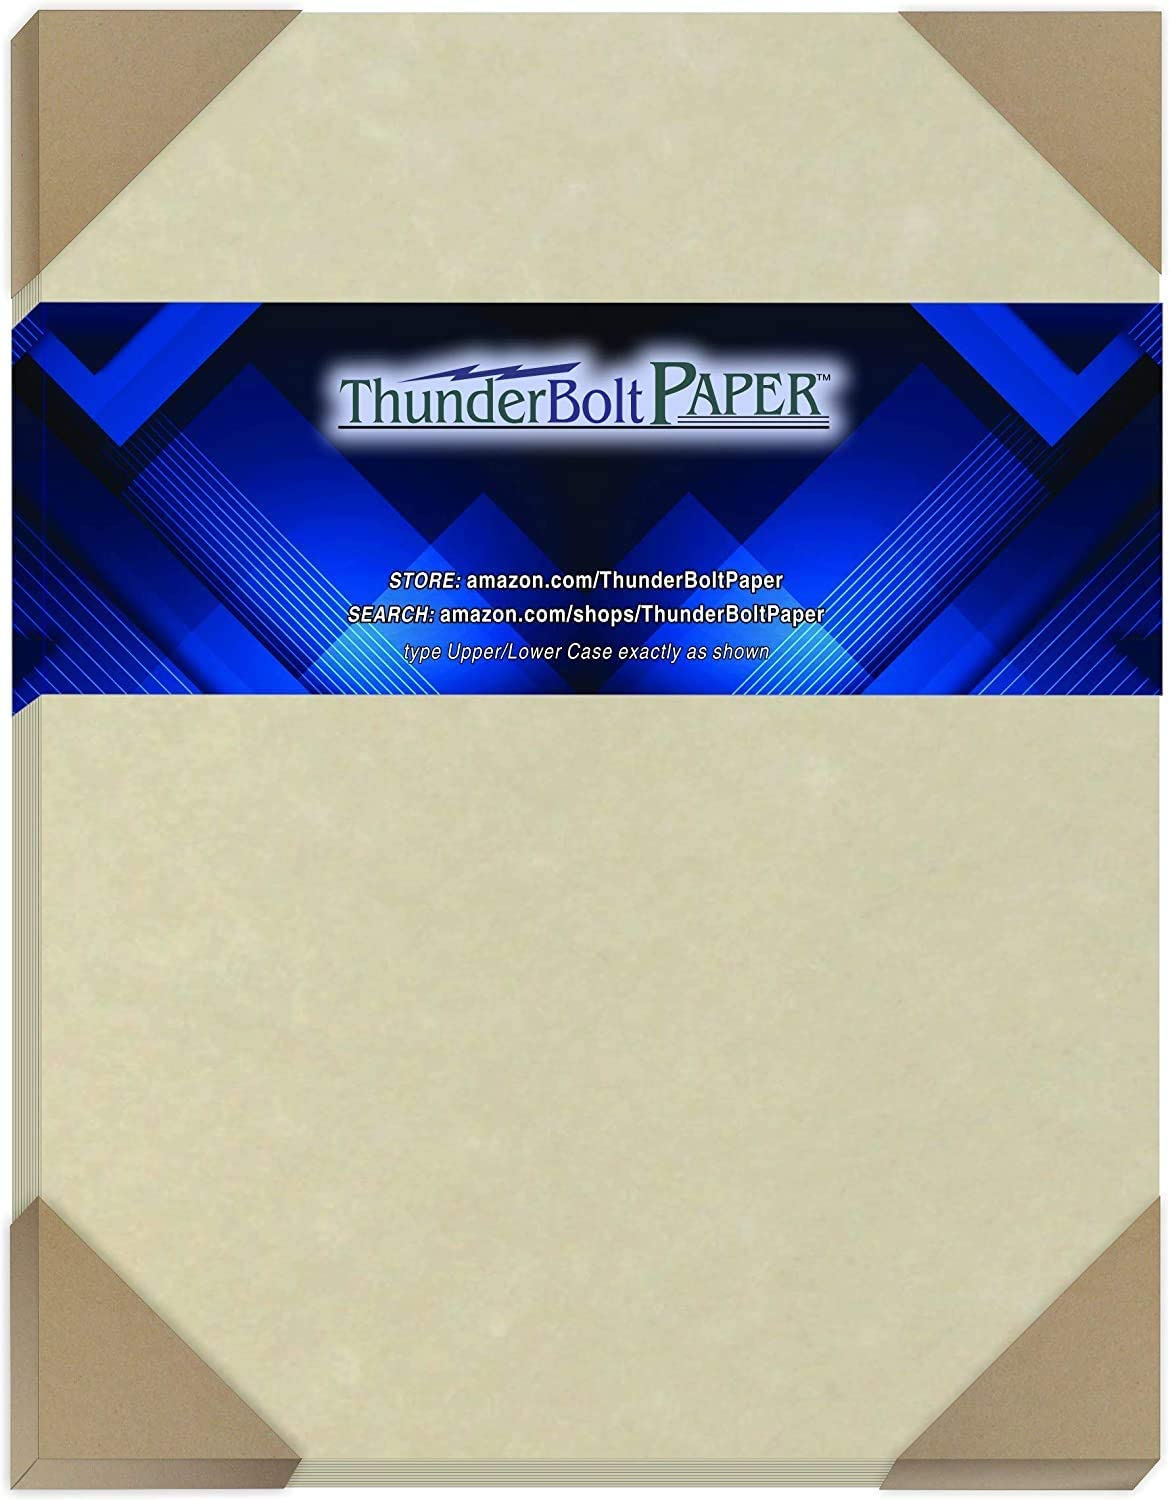 50 Natural Parchment 60# Text (=24# Bond) Paper Sheets - 8.5 X 11 Inches Standard Letter|Flyer Size - 60 Pound is Not Card Weight - Vintage Colored Old Parchment Semblance